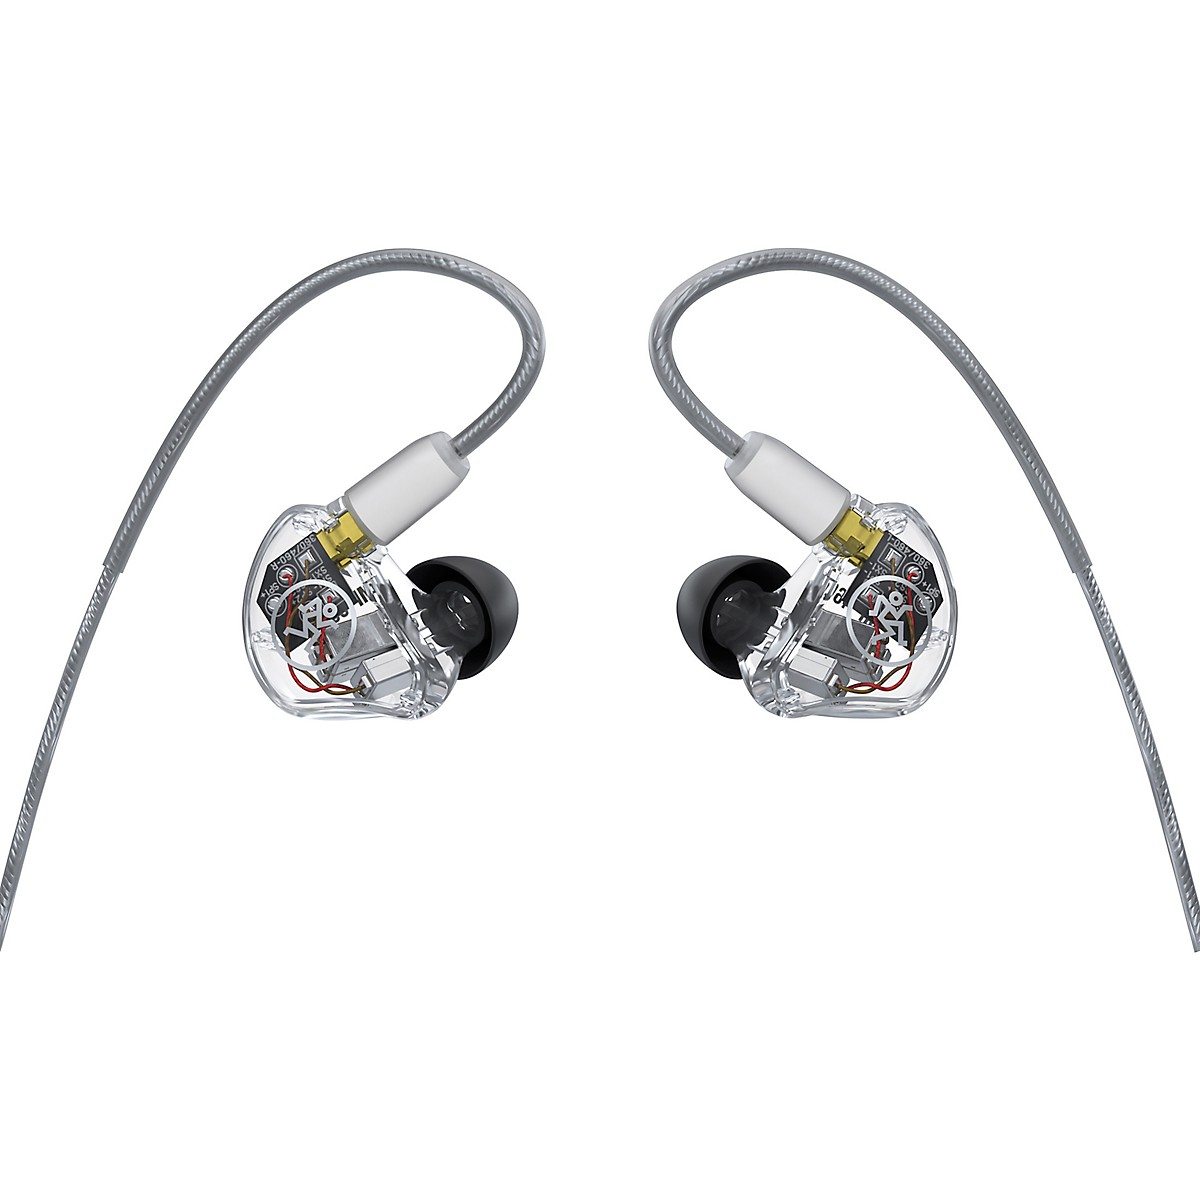 Mackie MP-360 In-Ear Monitors With Triple Balanced Armature